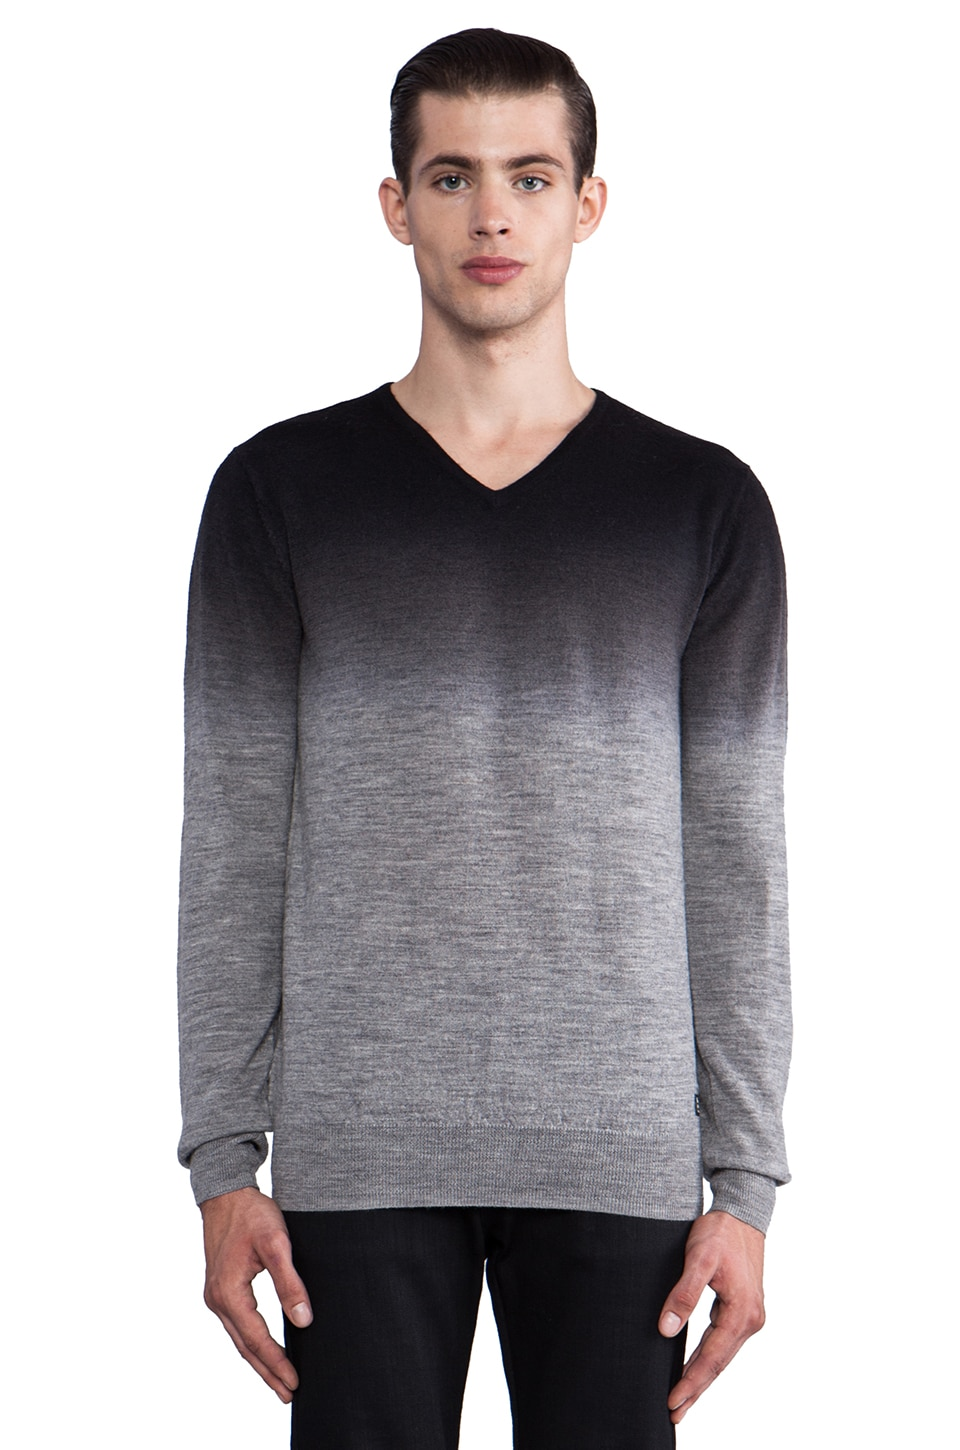 Scotch & Soda All Over Print V Neck Sweater in Grey